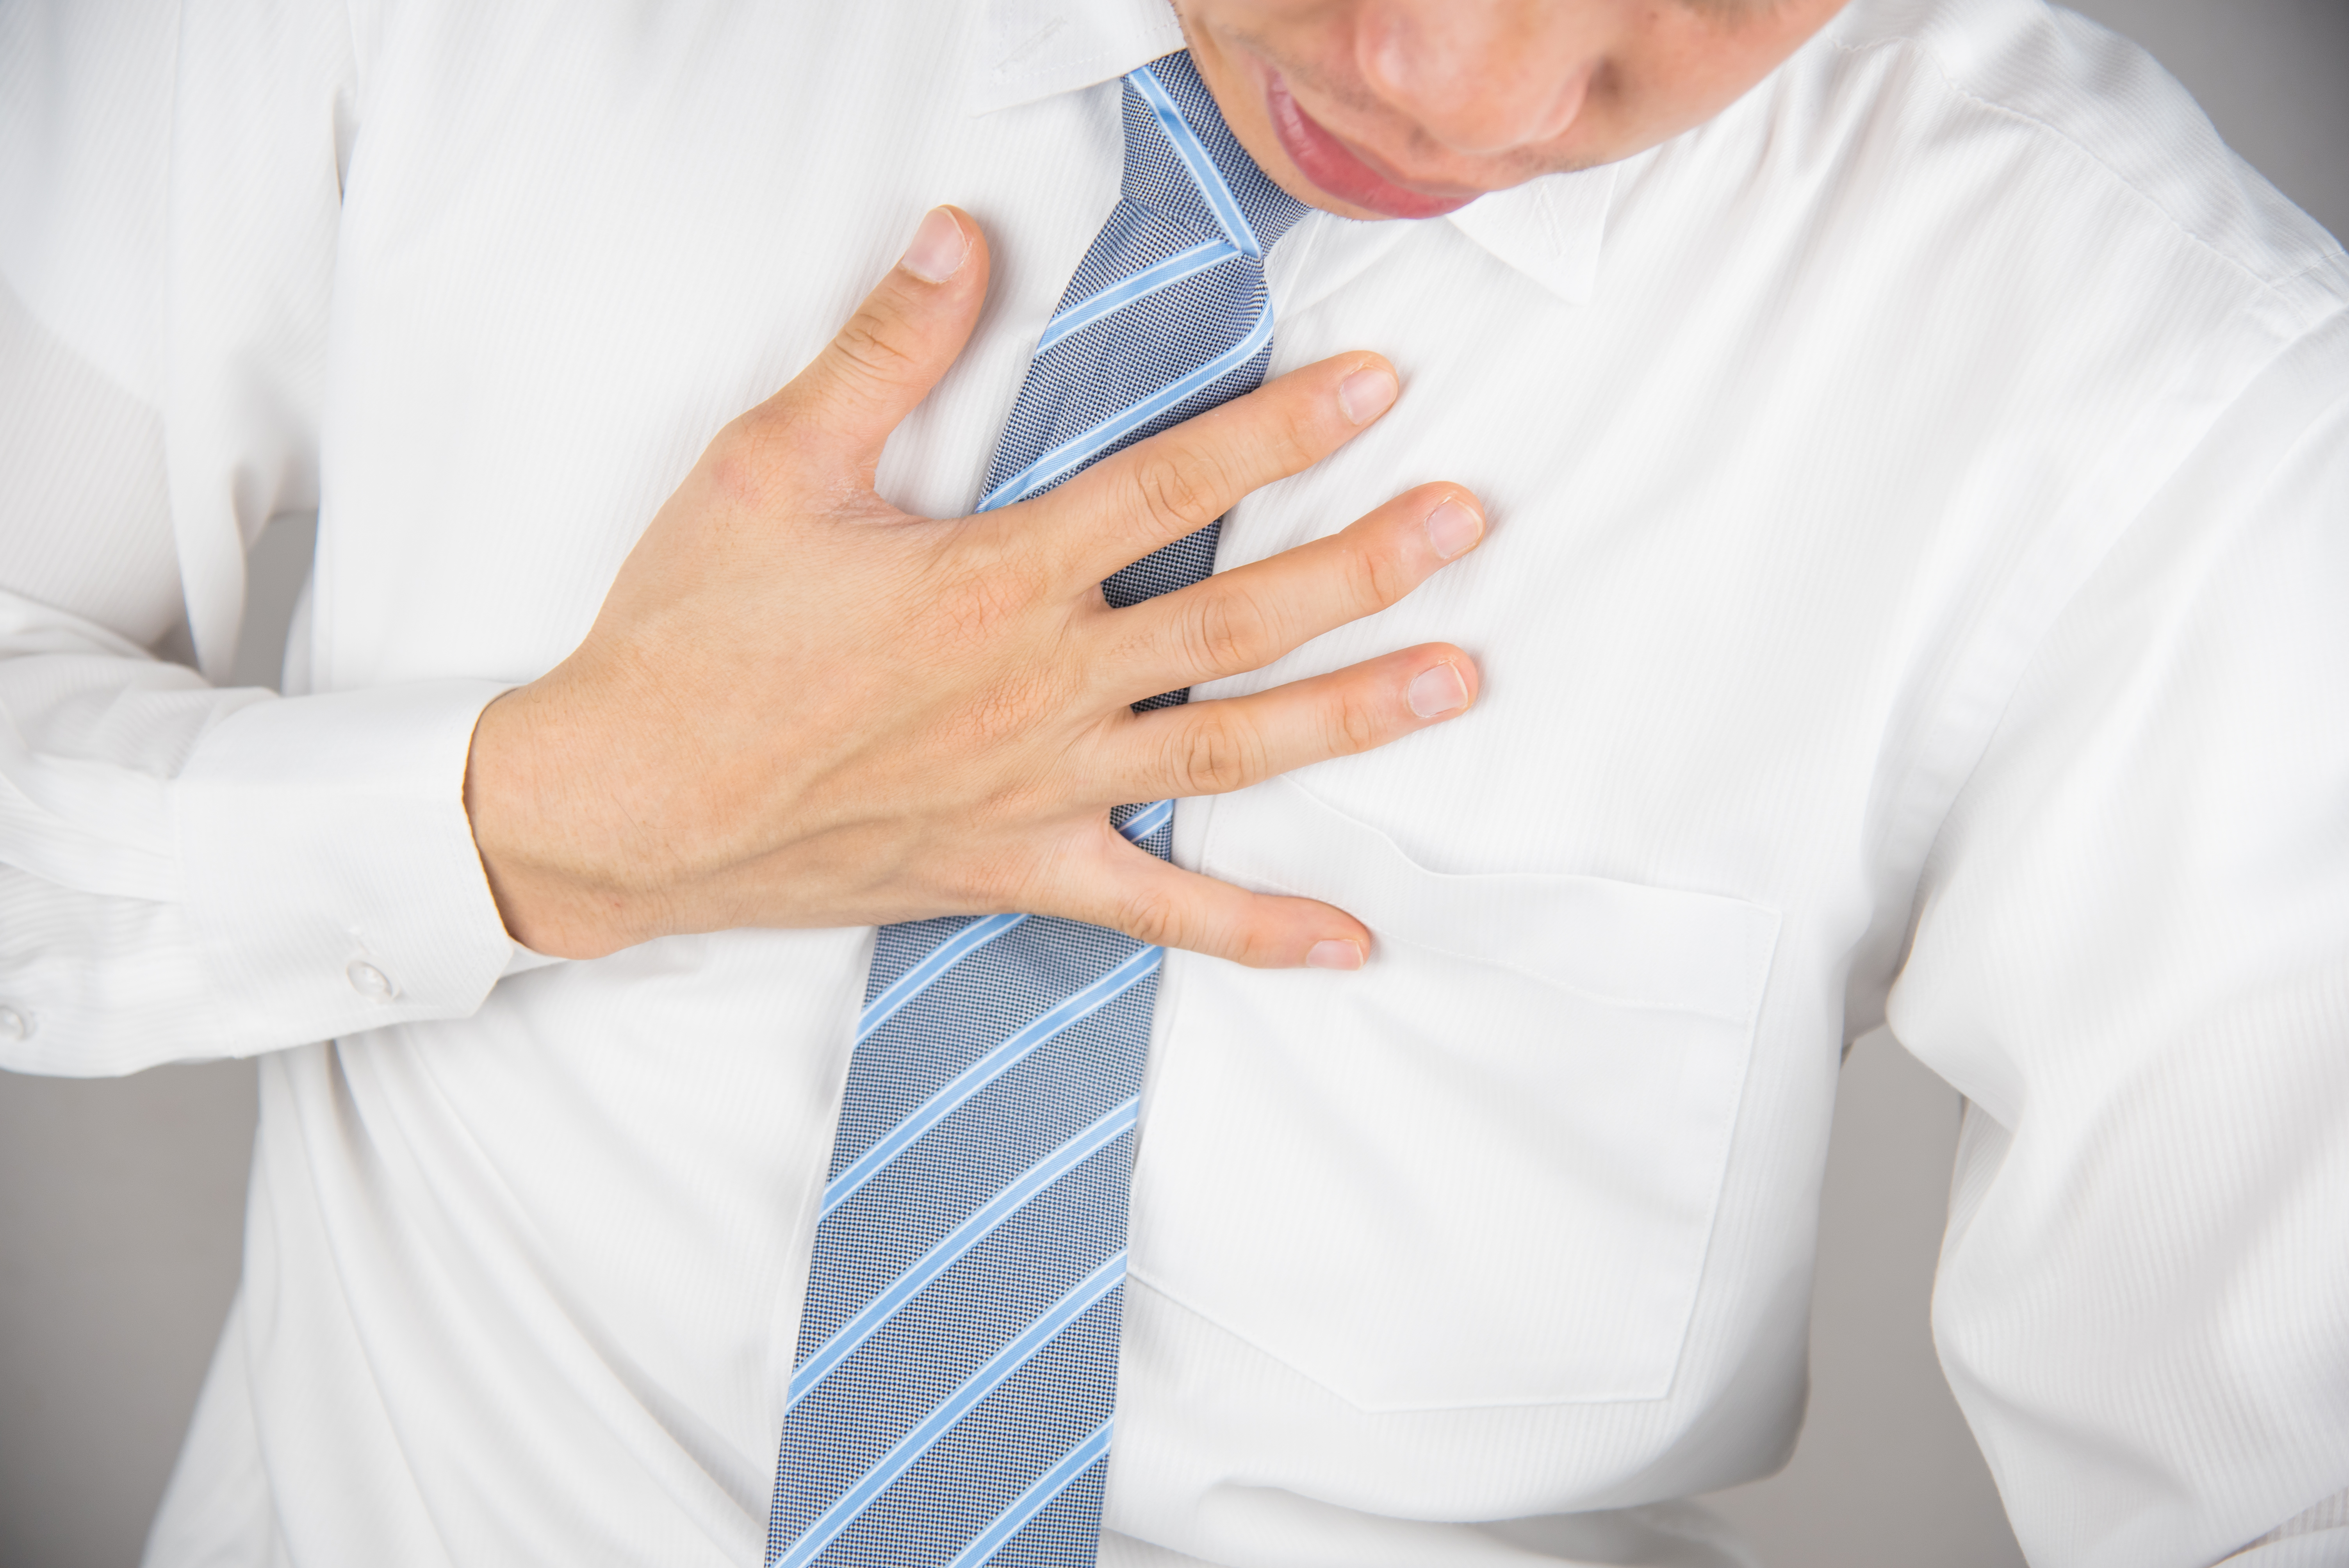 Chest Pain, Pain/Numbness in Left Arm, Burping: Heart Attack?